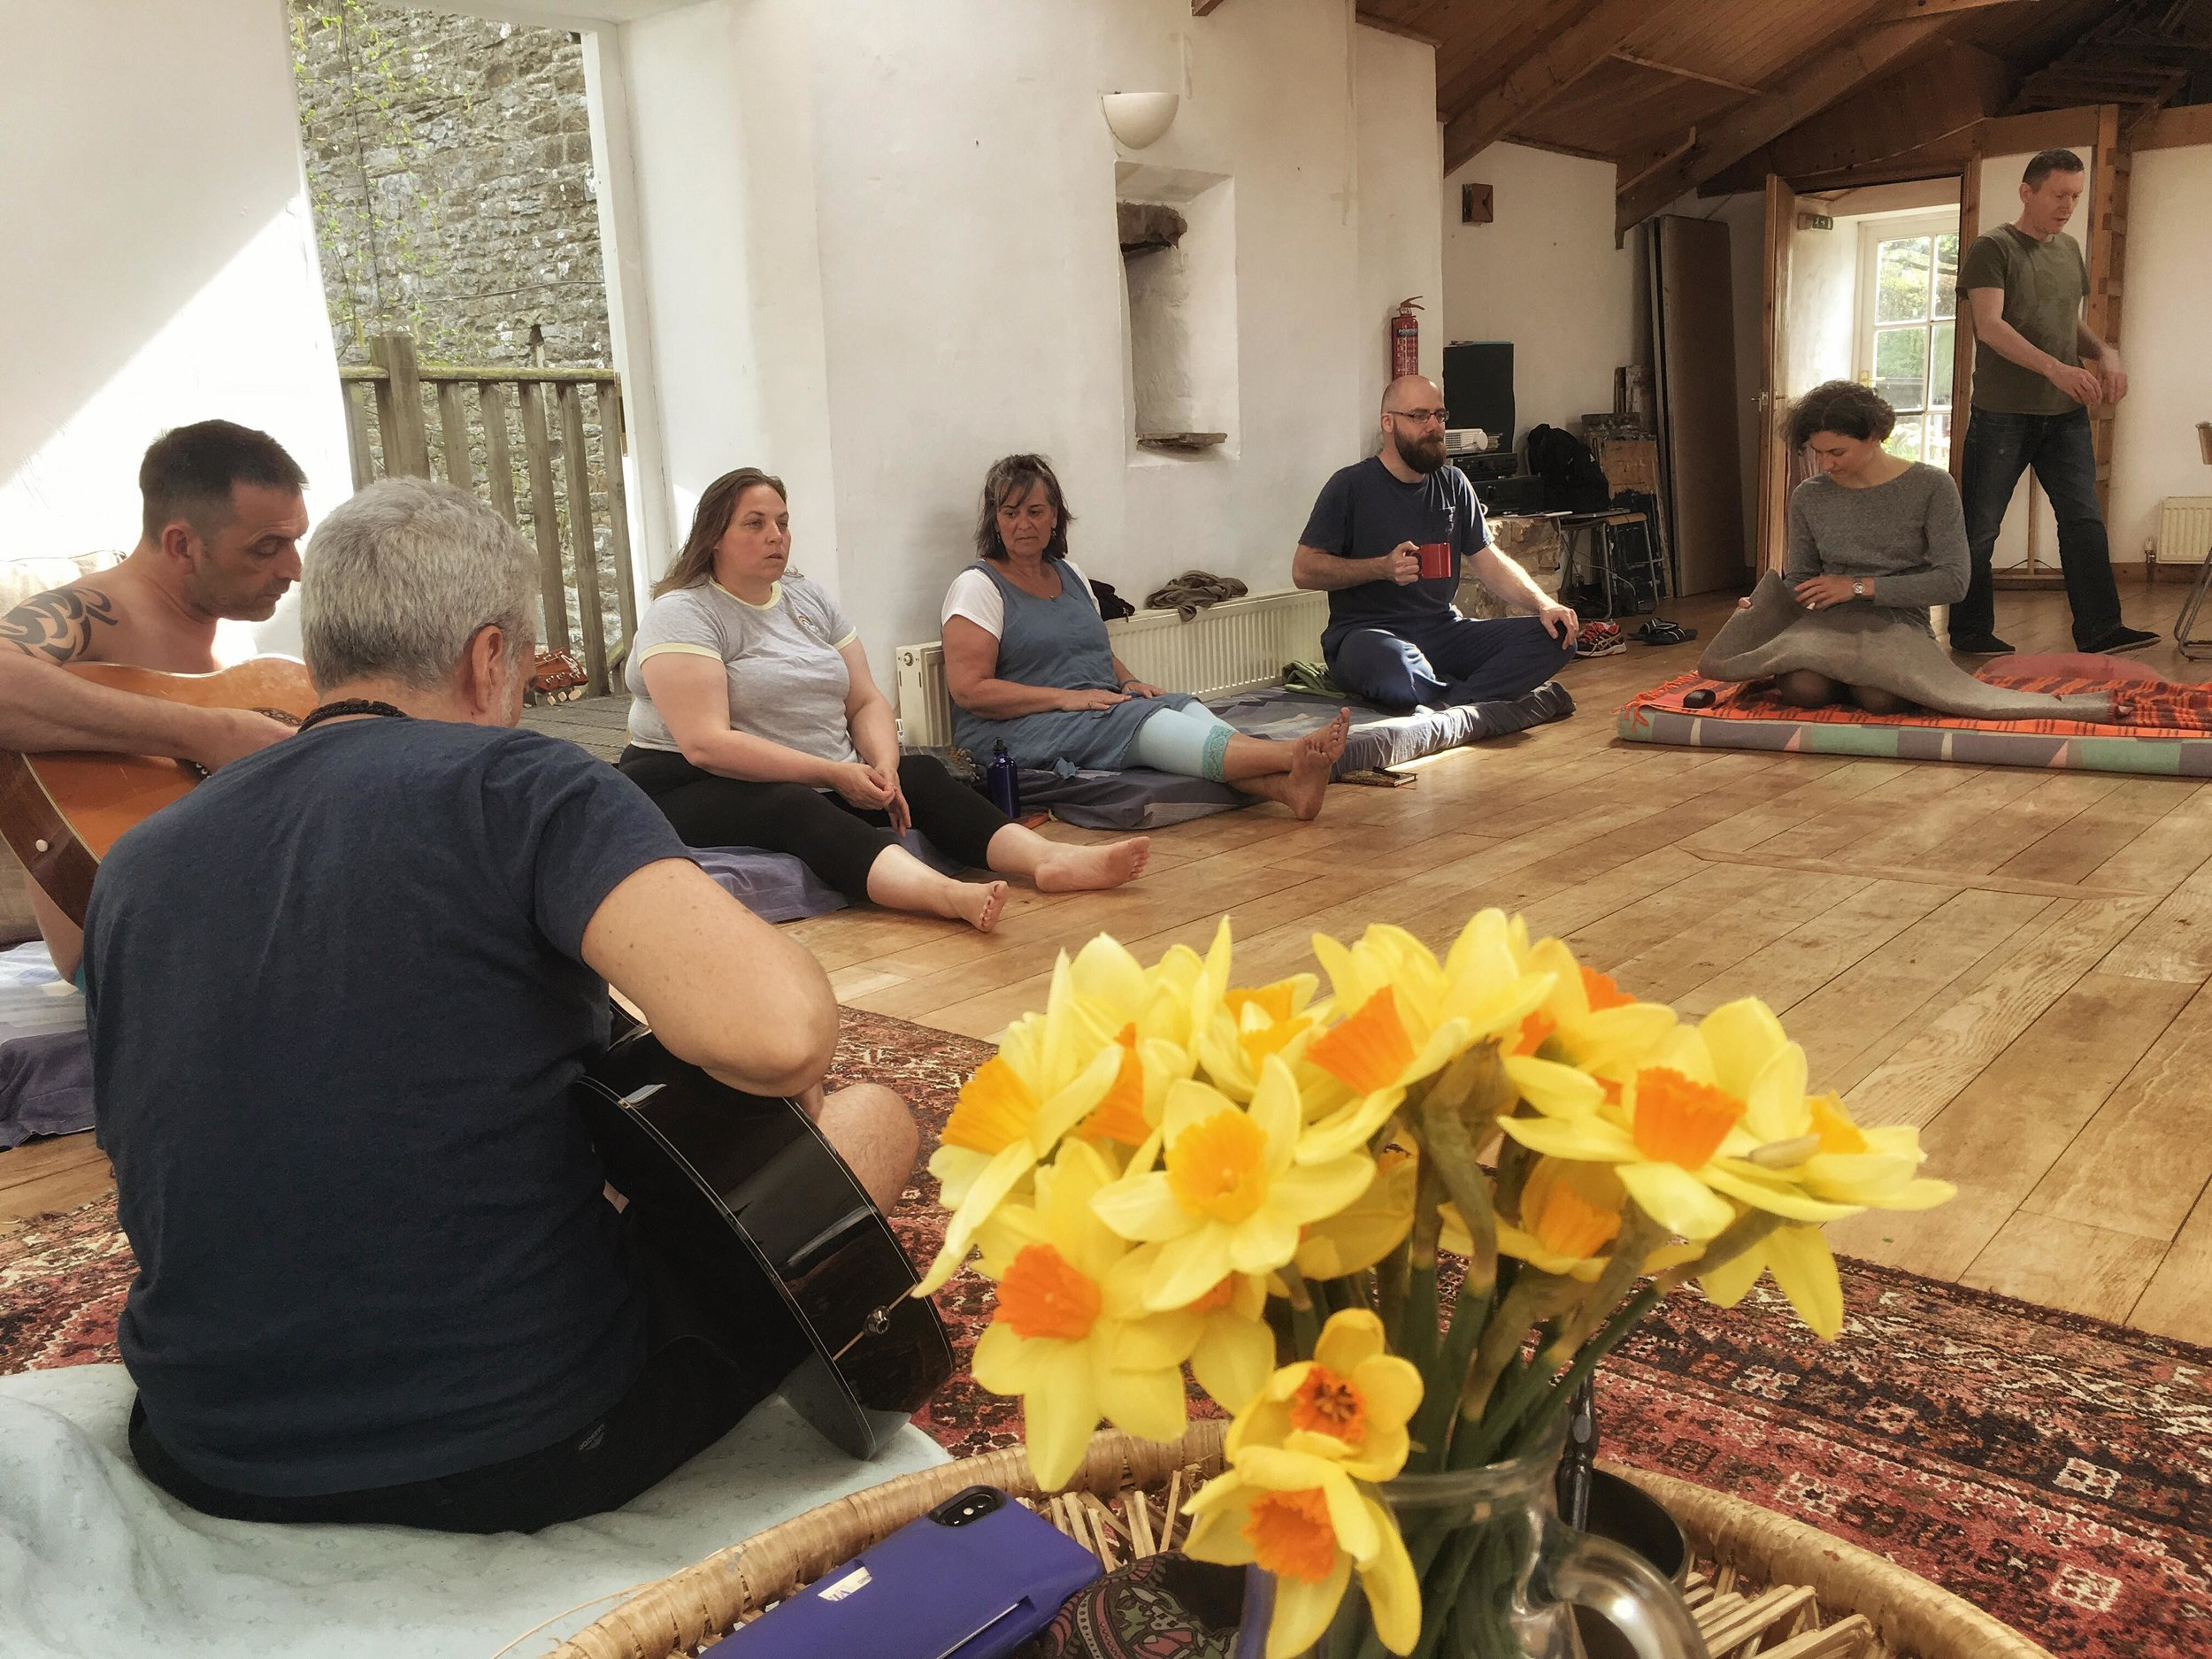 Attendees at the Burnlaw Retreat Center, May 2018